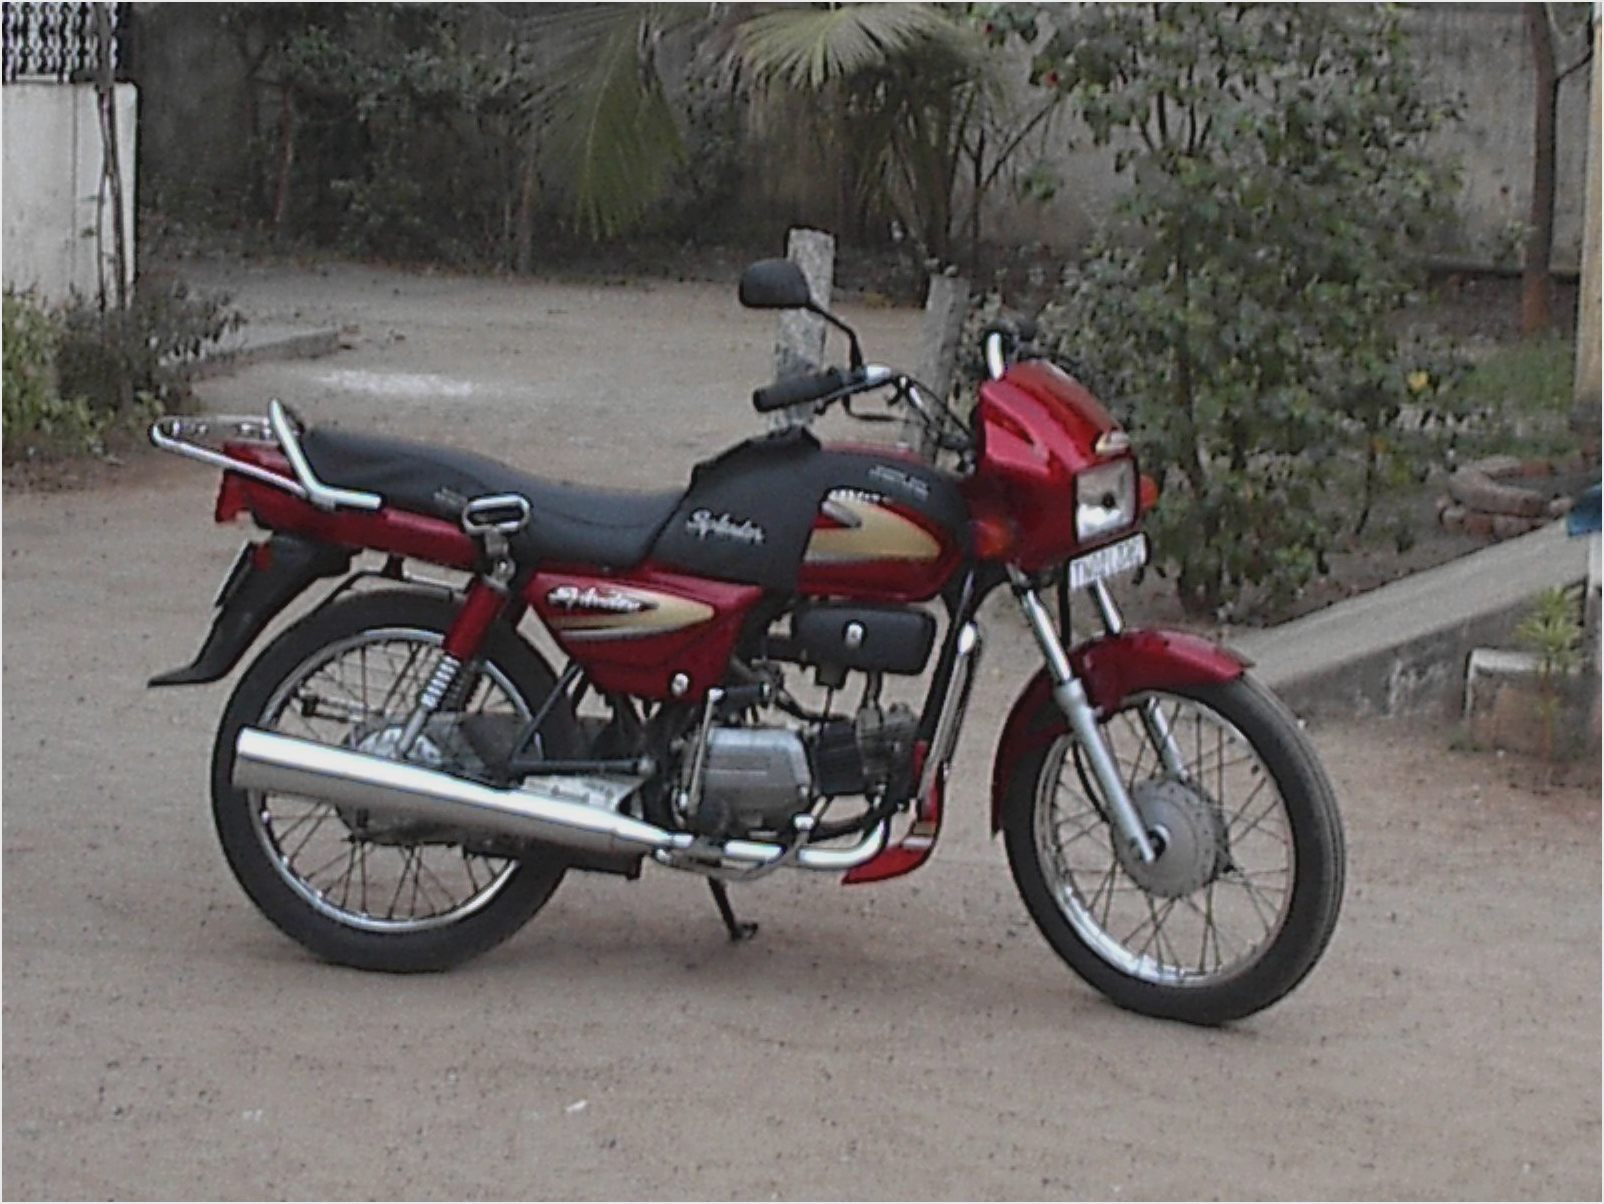 Hero Honda Splendor 2007 images #95892